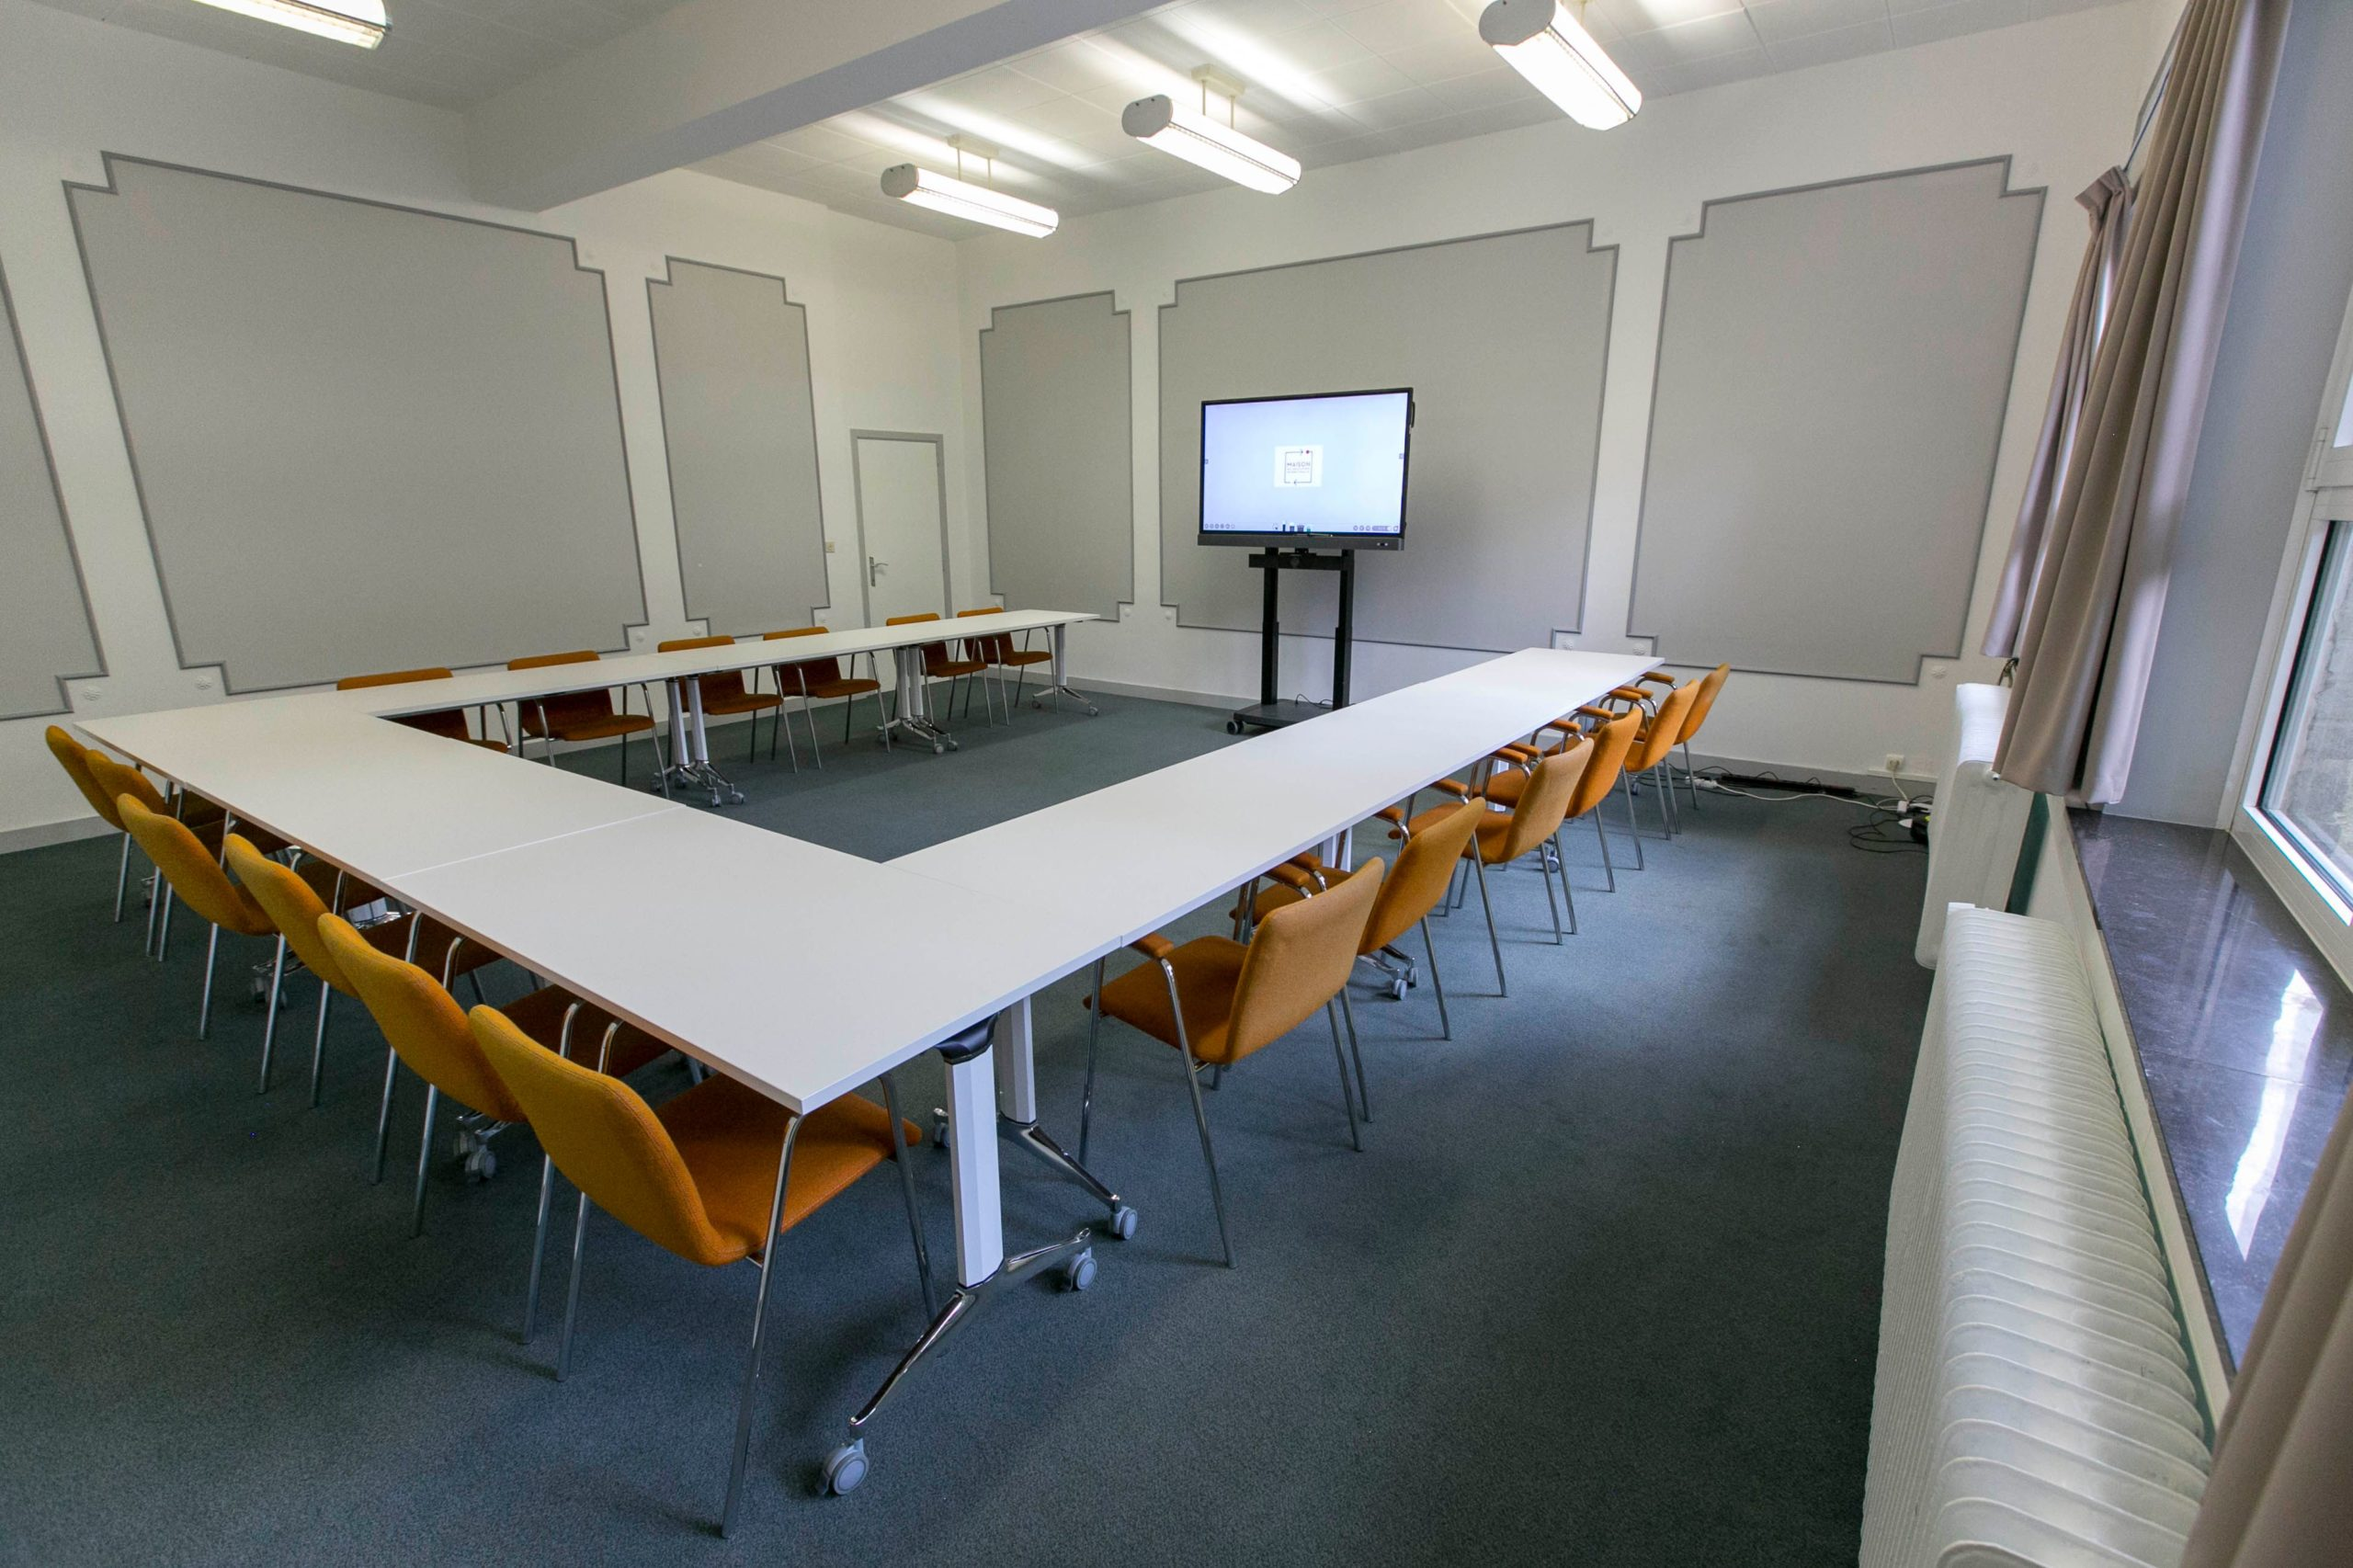 Meeting room - Maison des associations internationales - M.A.I.